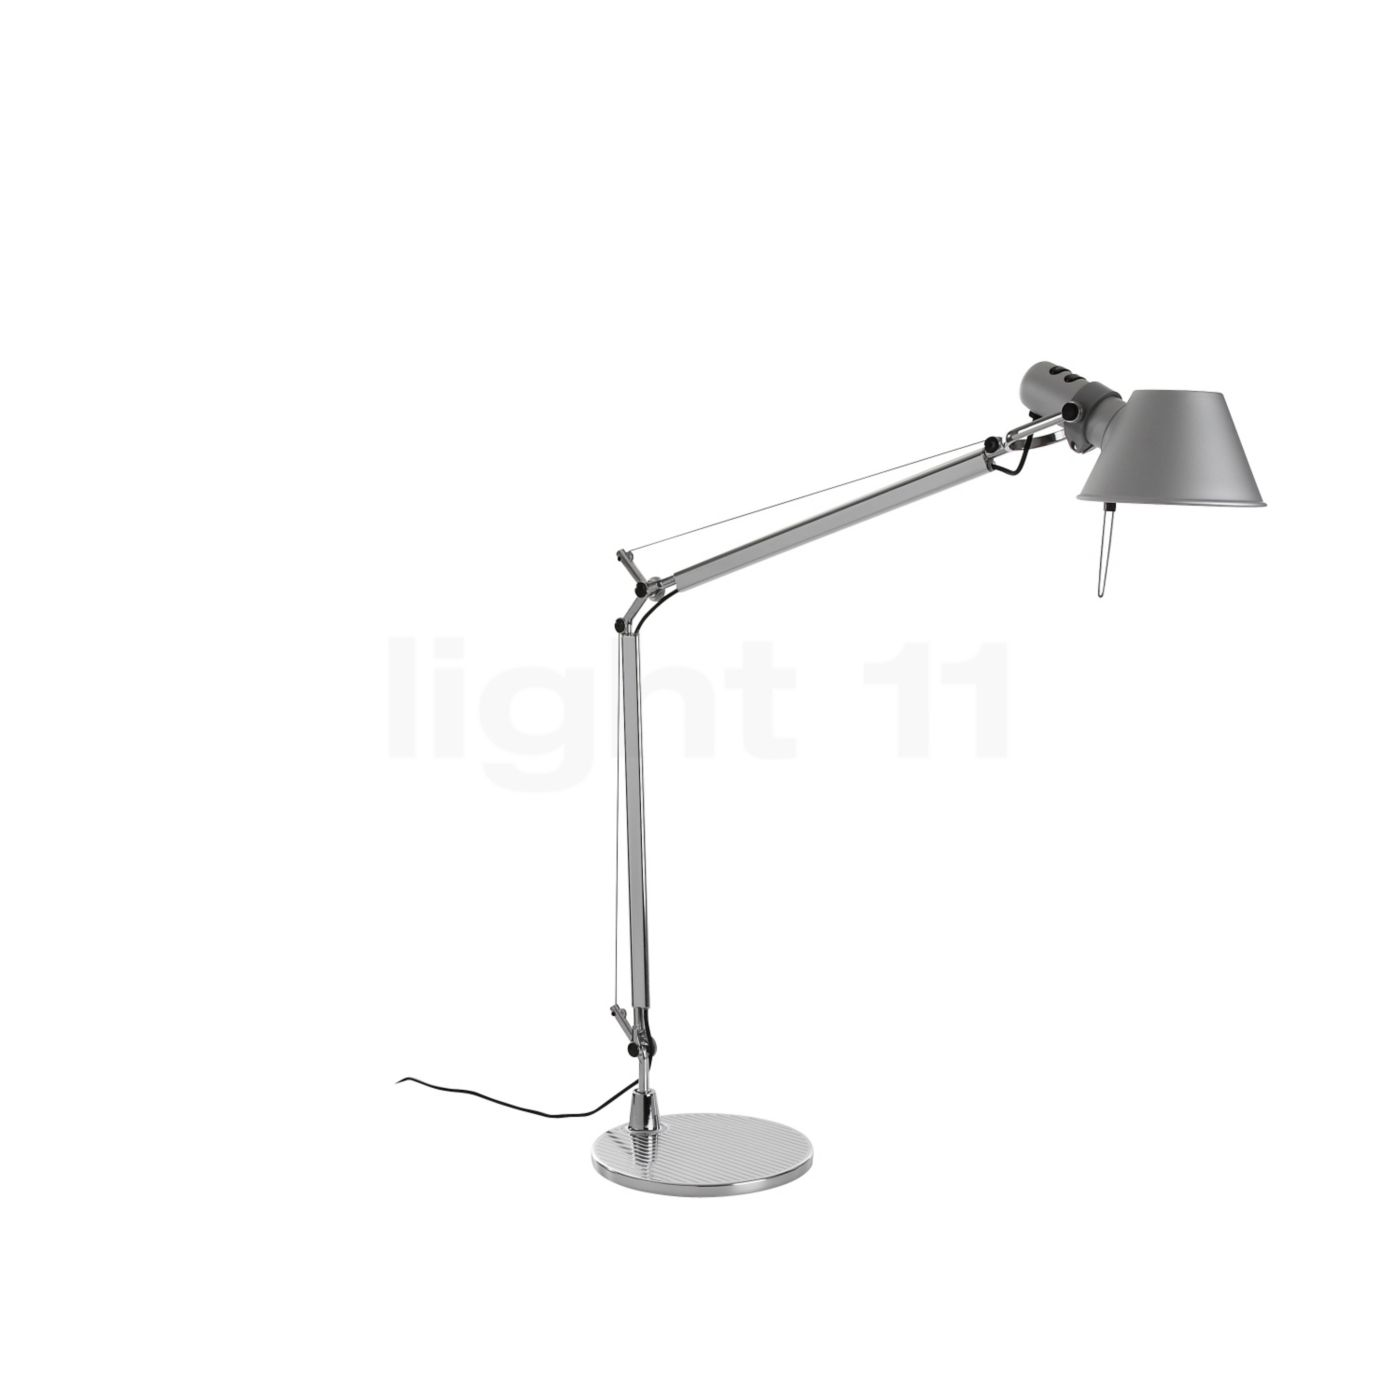 Design Lights U0026 Designer Lamps Light11.eu